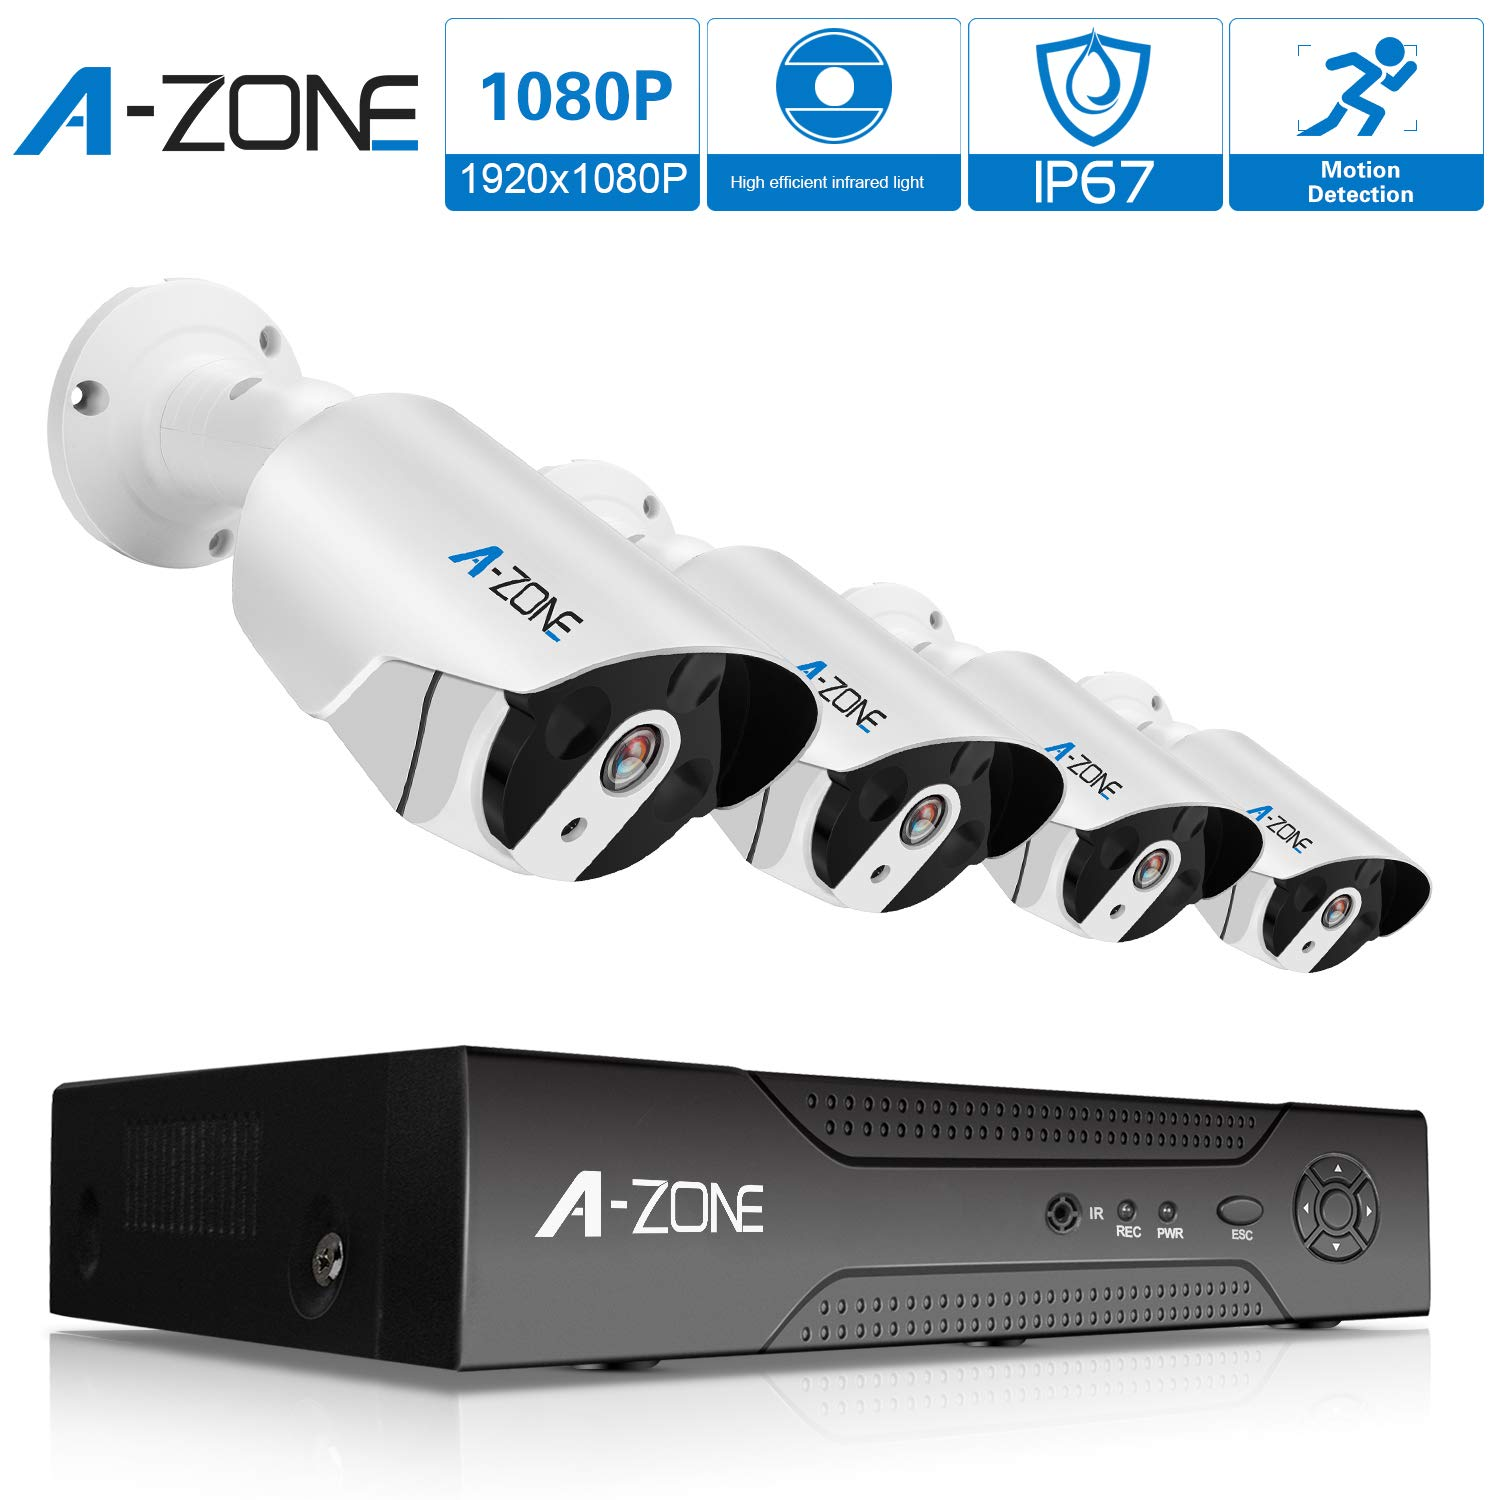 Security Camera System, A-ZONE Security 8ch 1080P NVR HD 1080P IP PoE Security Camera System with 4 Outdoor/Indoor 3.6mm Fixed Lens 2MP 1080P Cameras, QR Code Easy Setup, Free Remote View-1TB HDD by A-ZONE